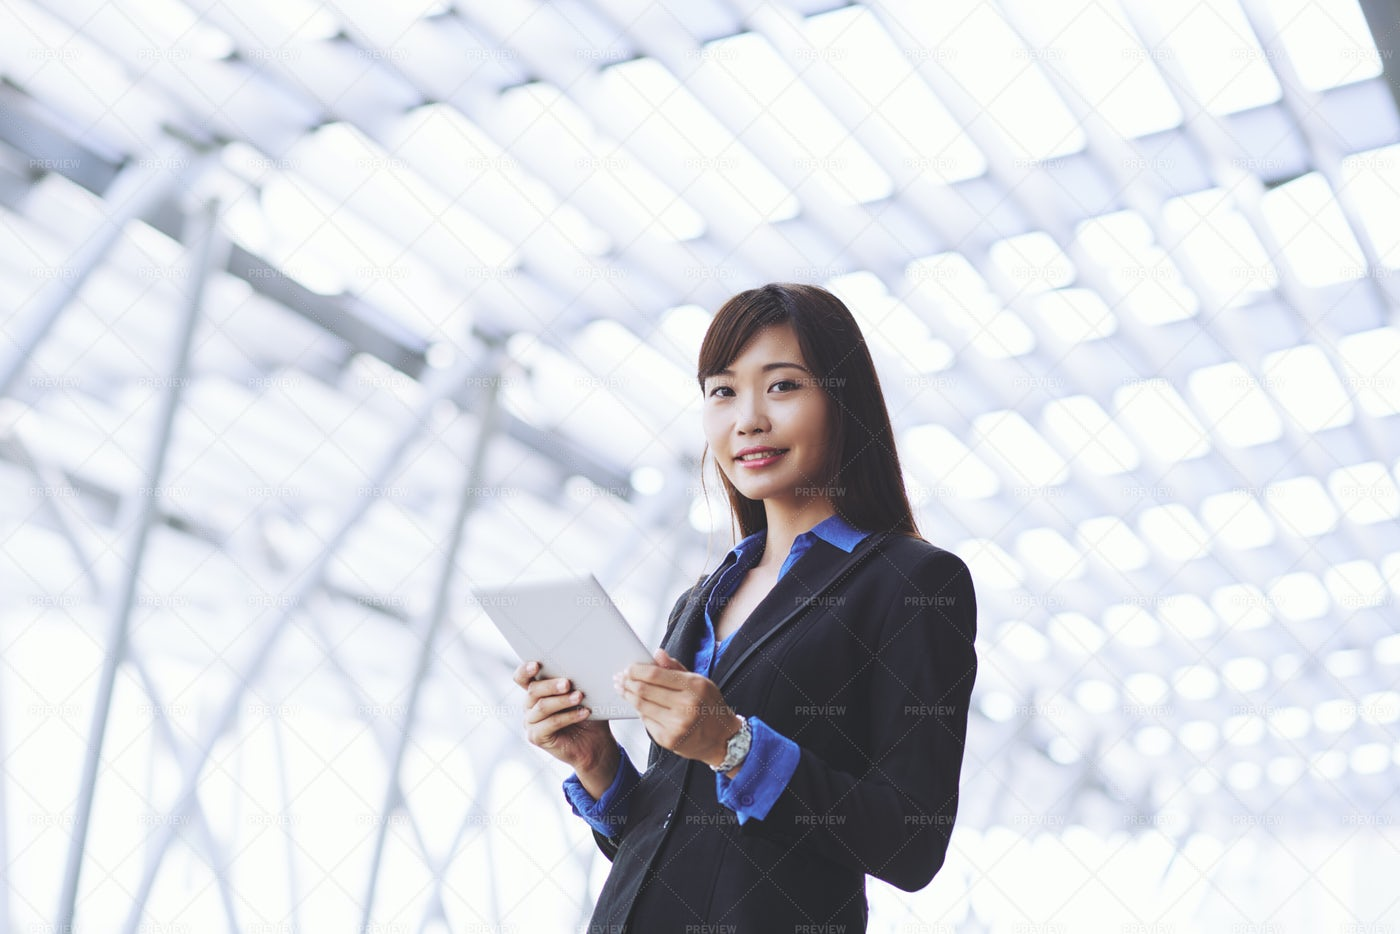 Business Woman With Digital Tablet: Stock Photos